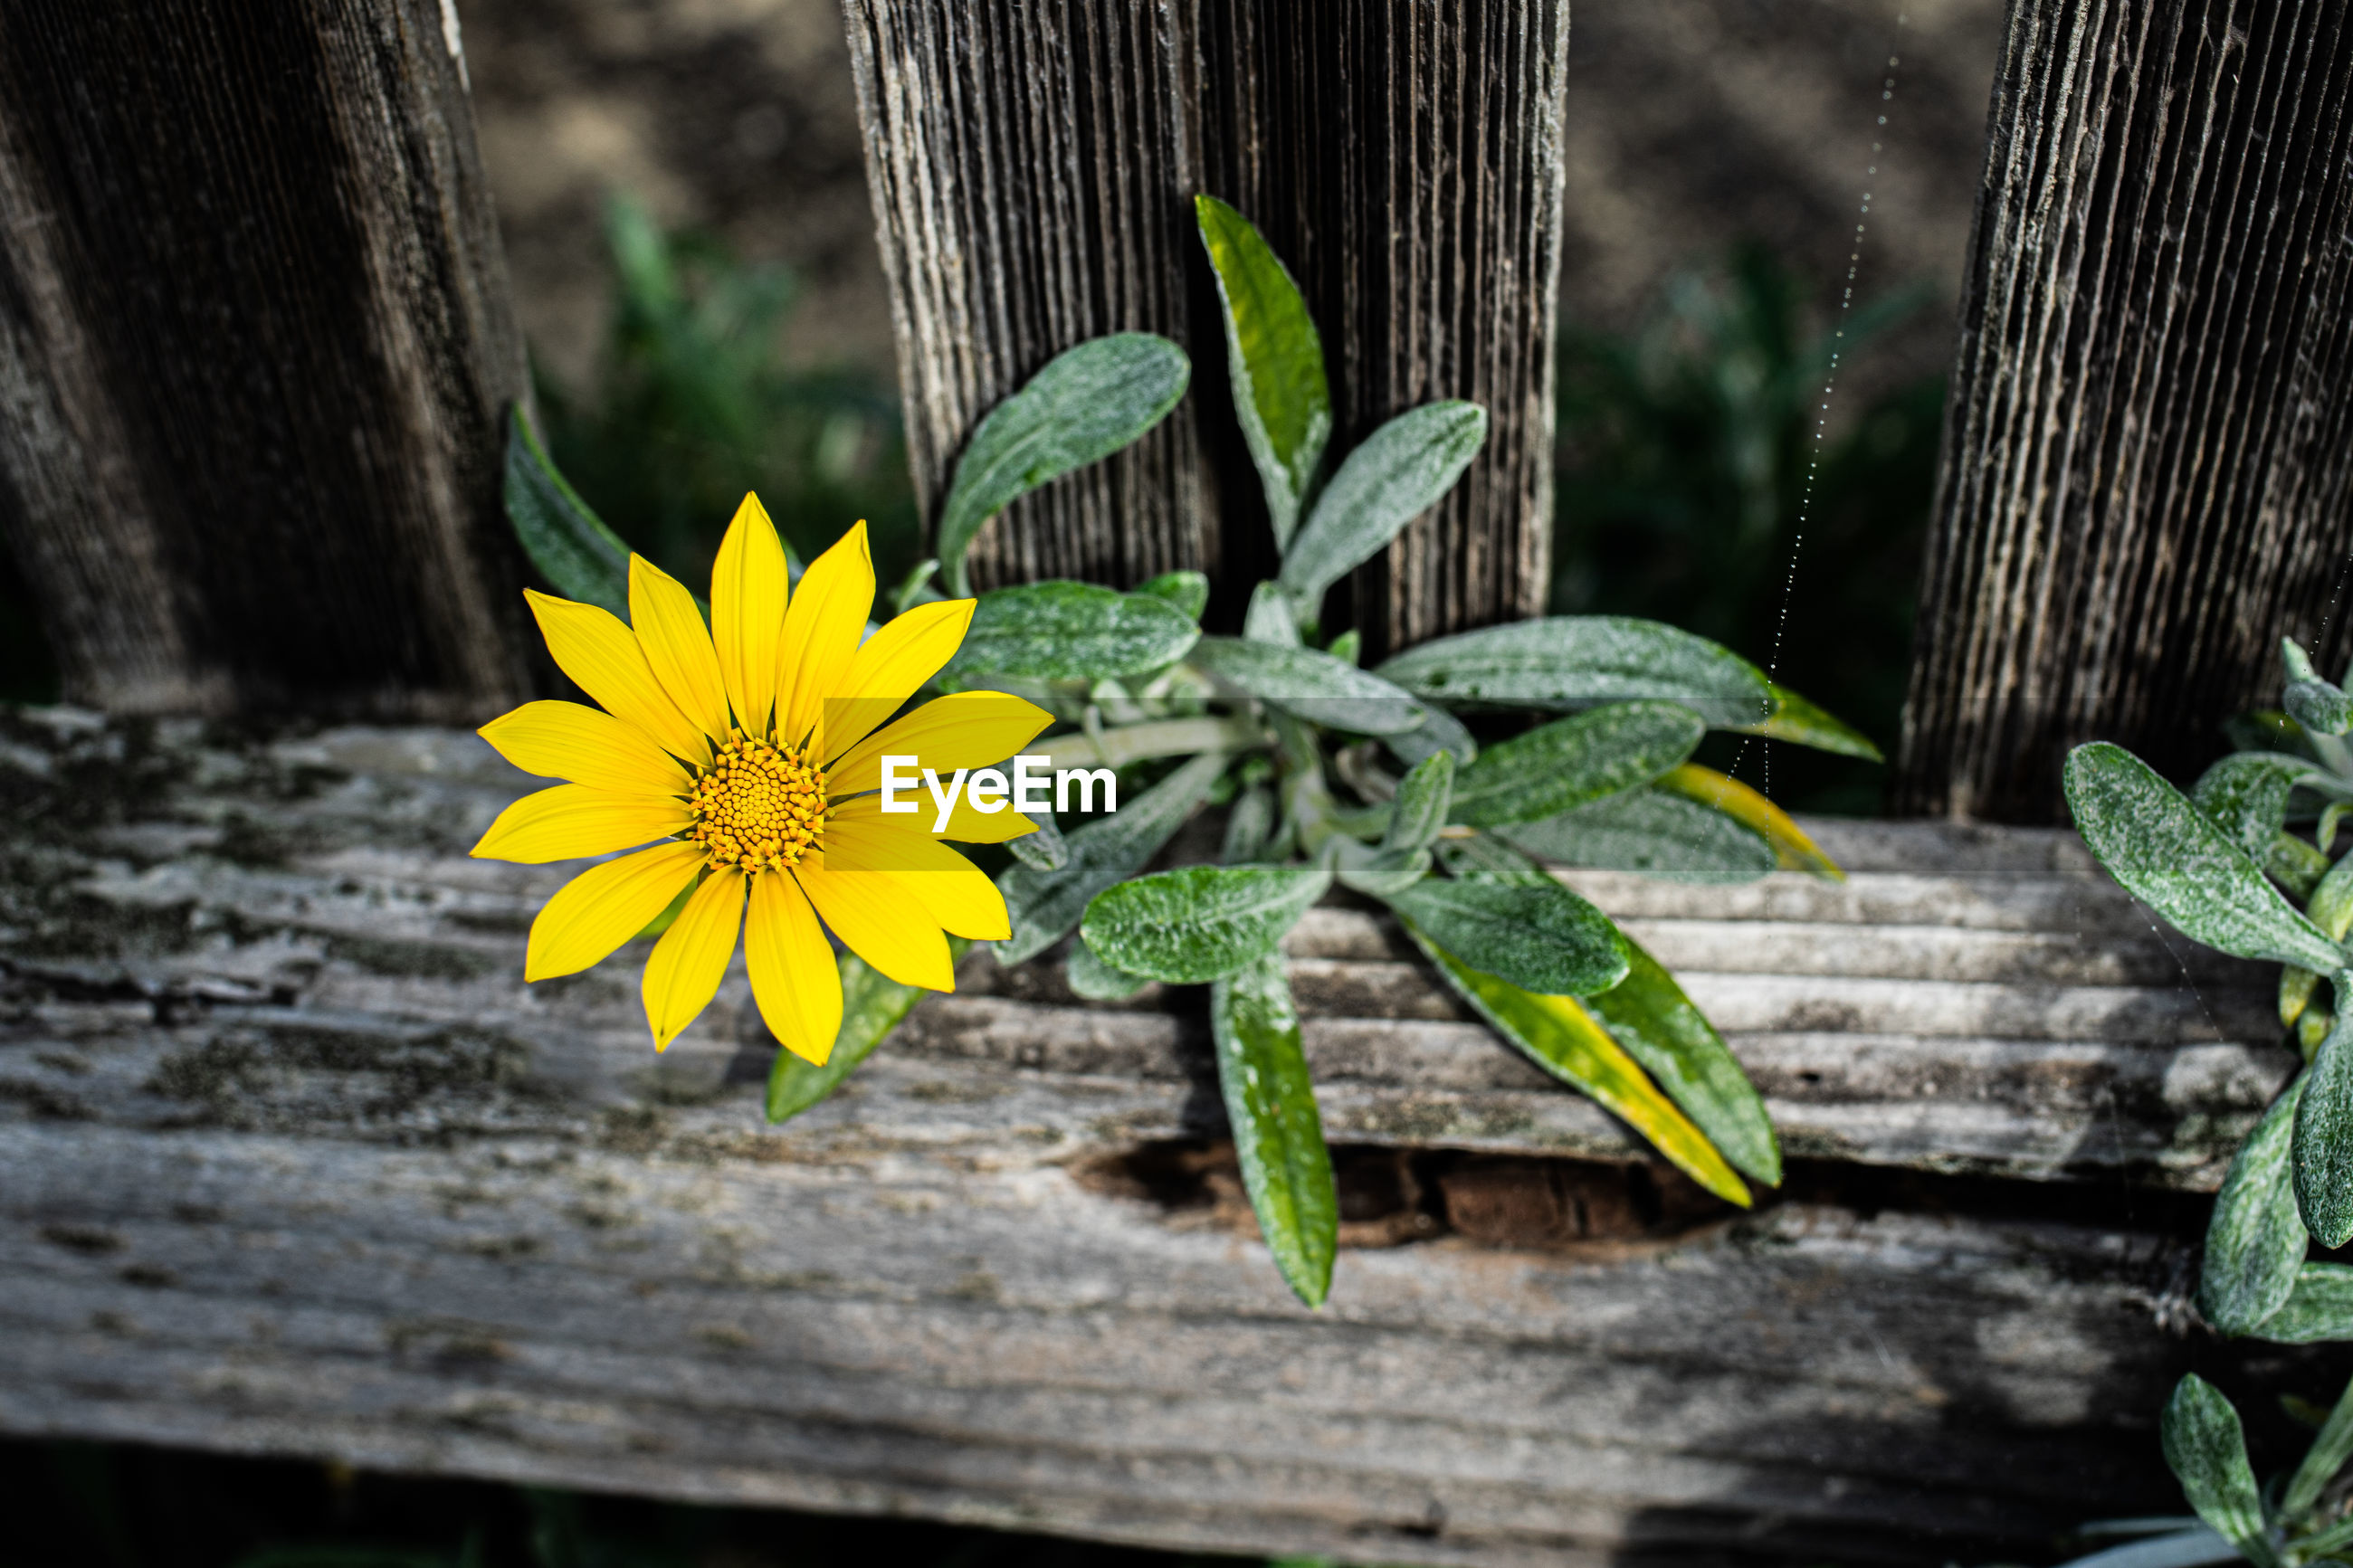 CLOSE-UP OF YELLOW FLOWERING PLANT AGAINST WOODEN WALL